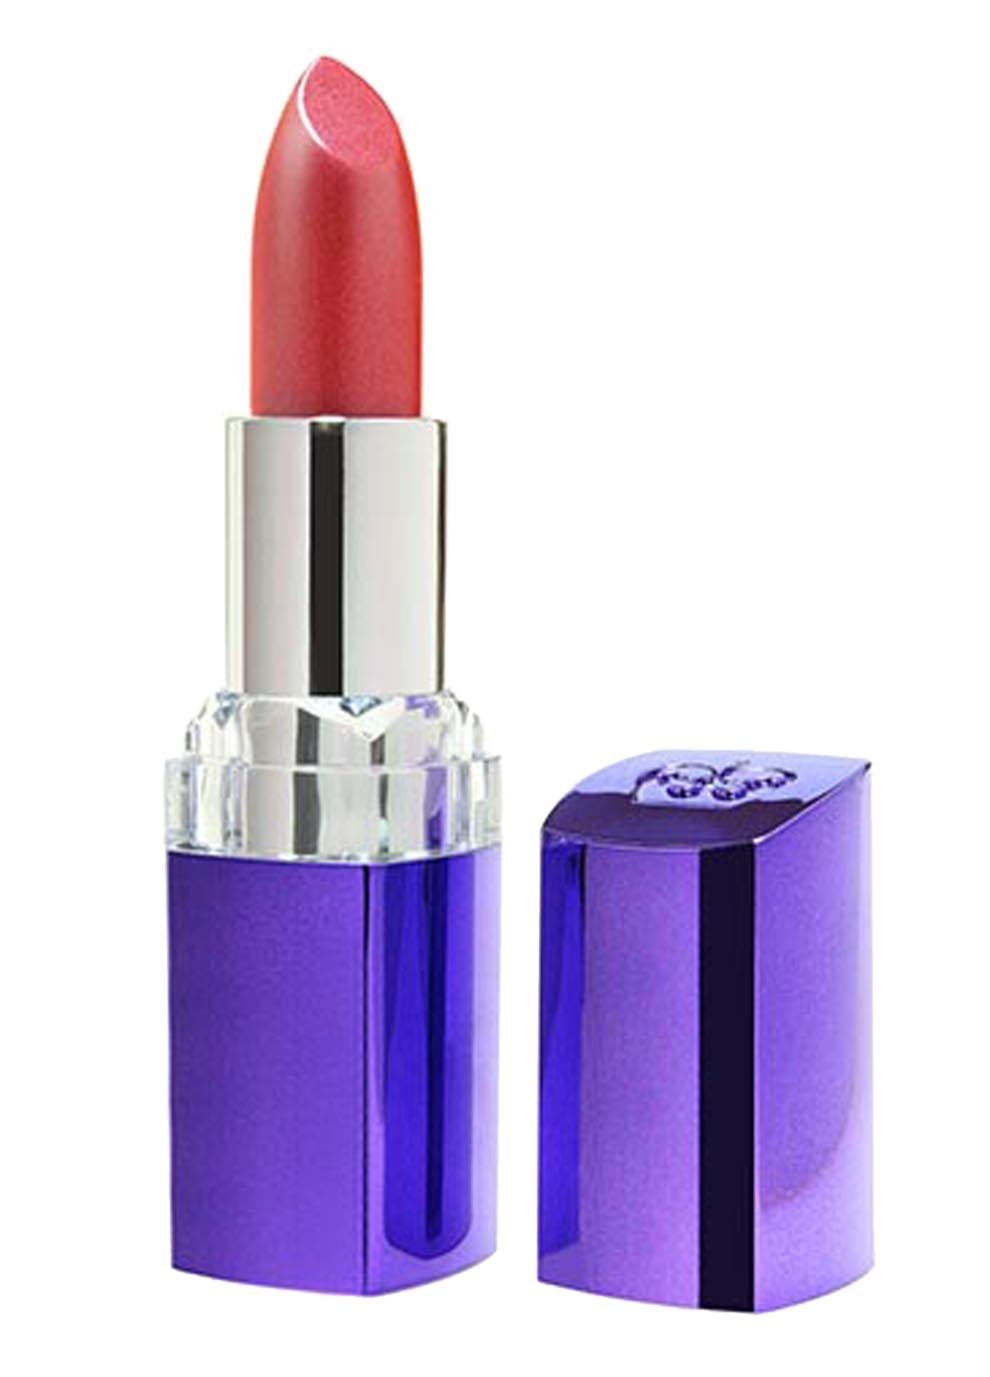 Rimmel London Moisture Renew Lipstick, Rose Sorbet